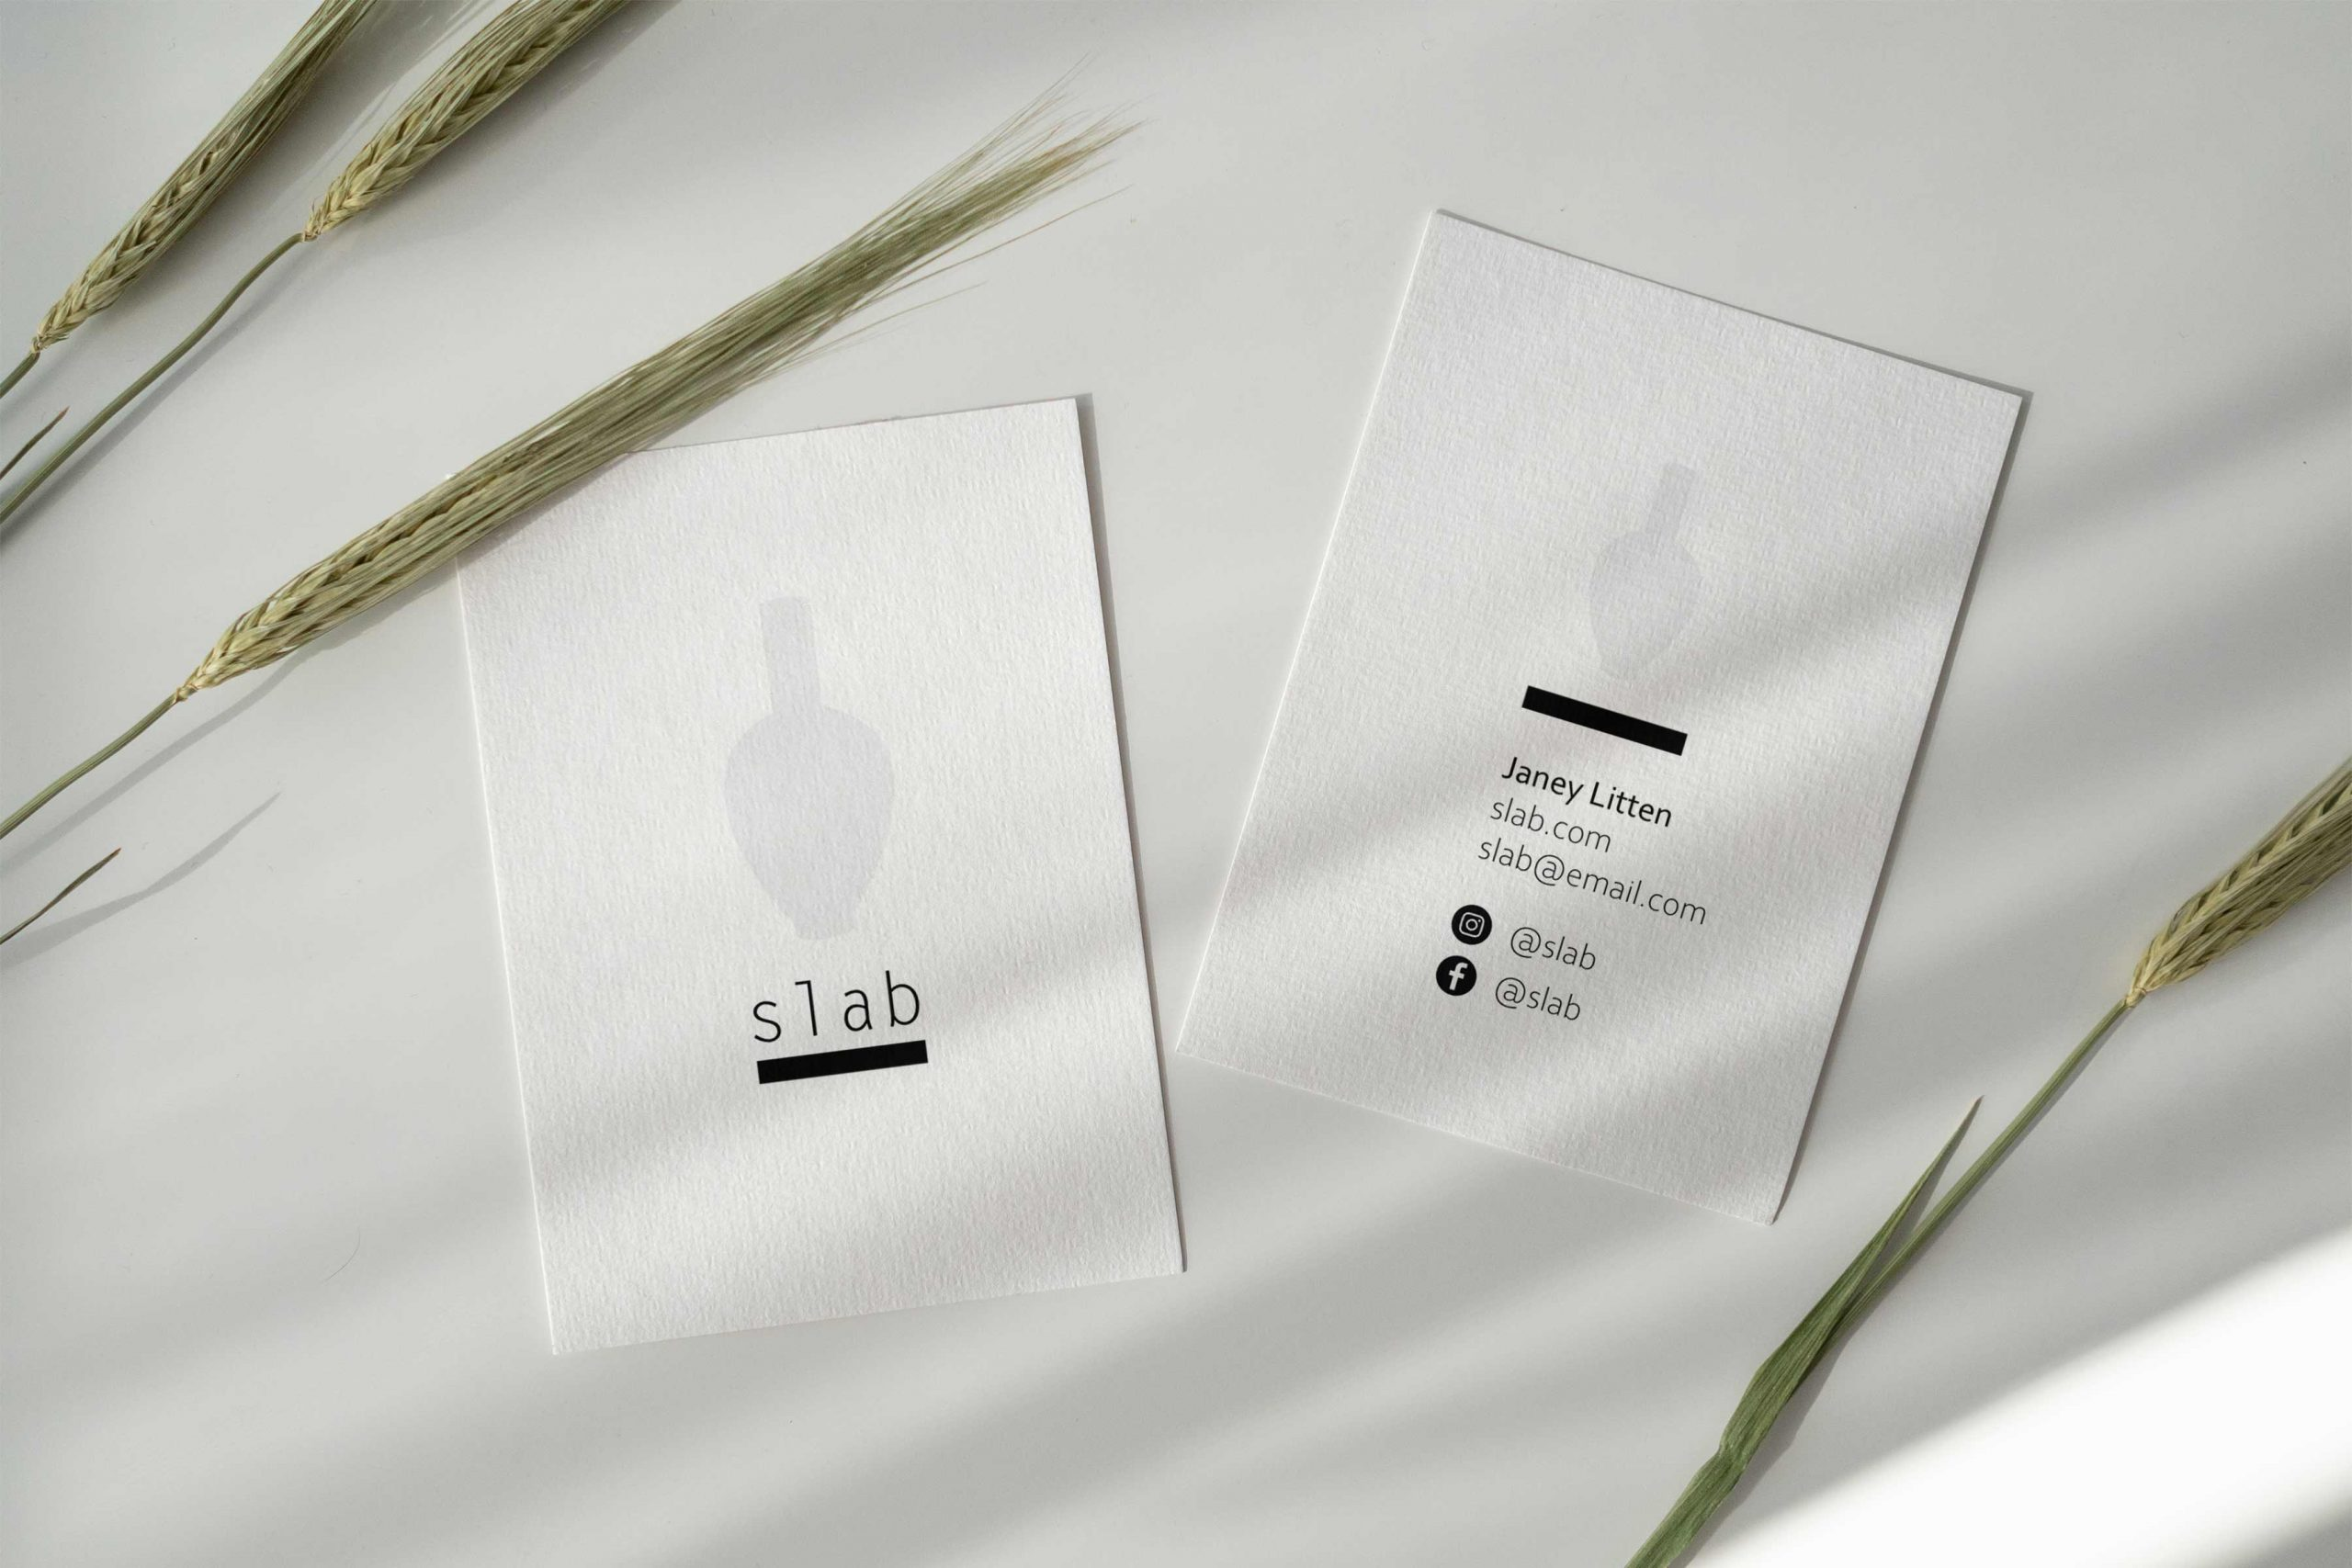 Two business cards with logos designed by Paige Digital and long shadows